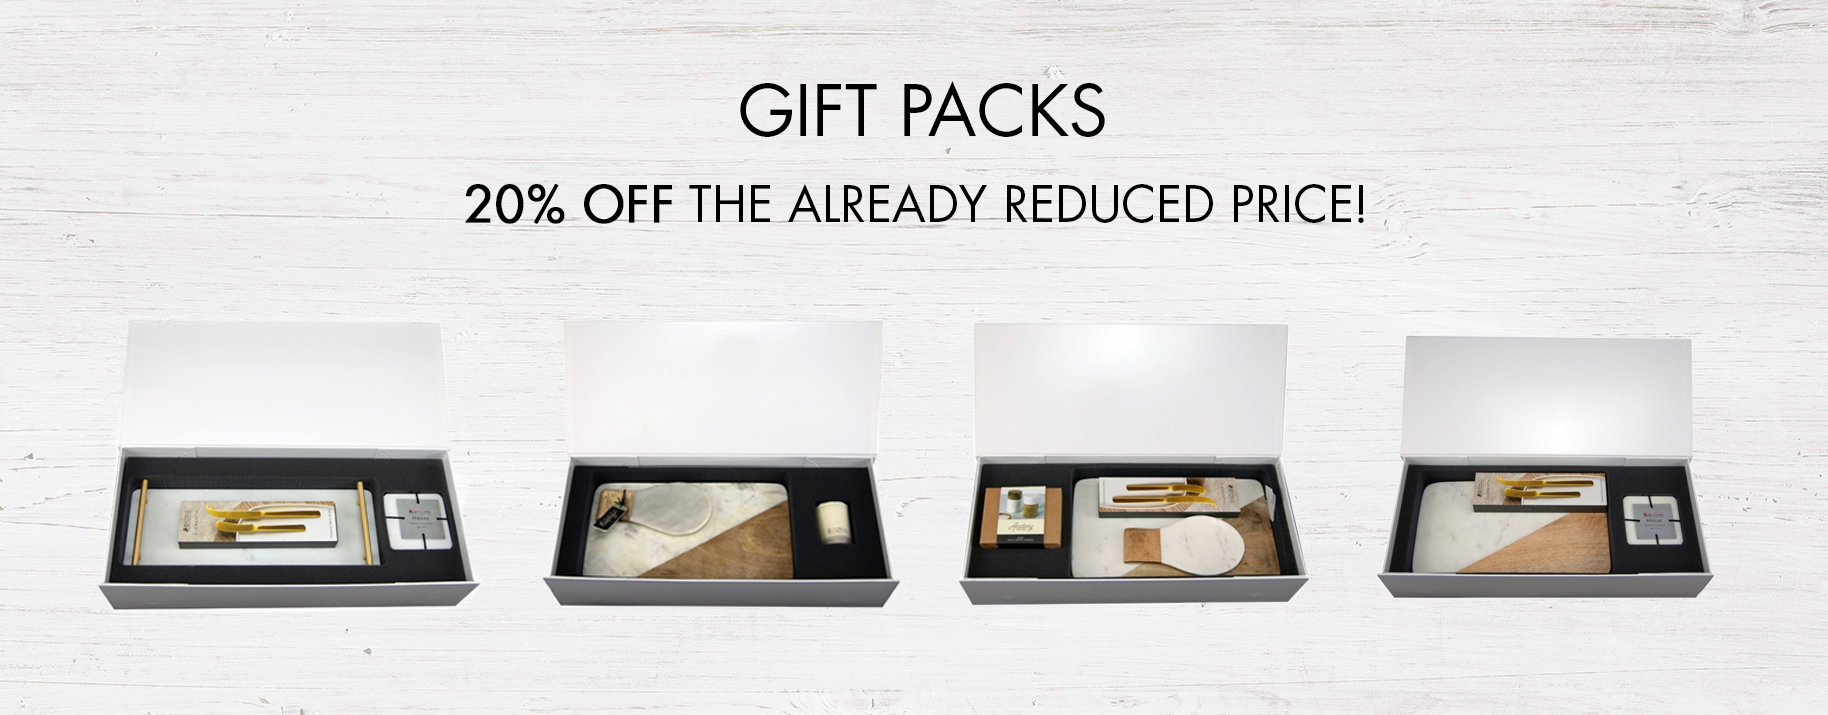 Gift Pack Promo